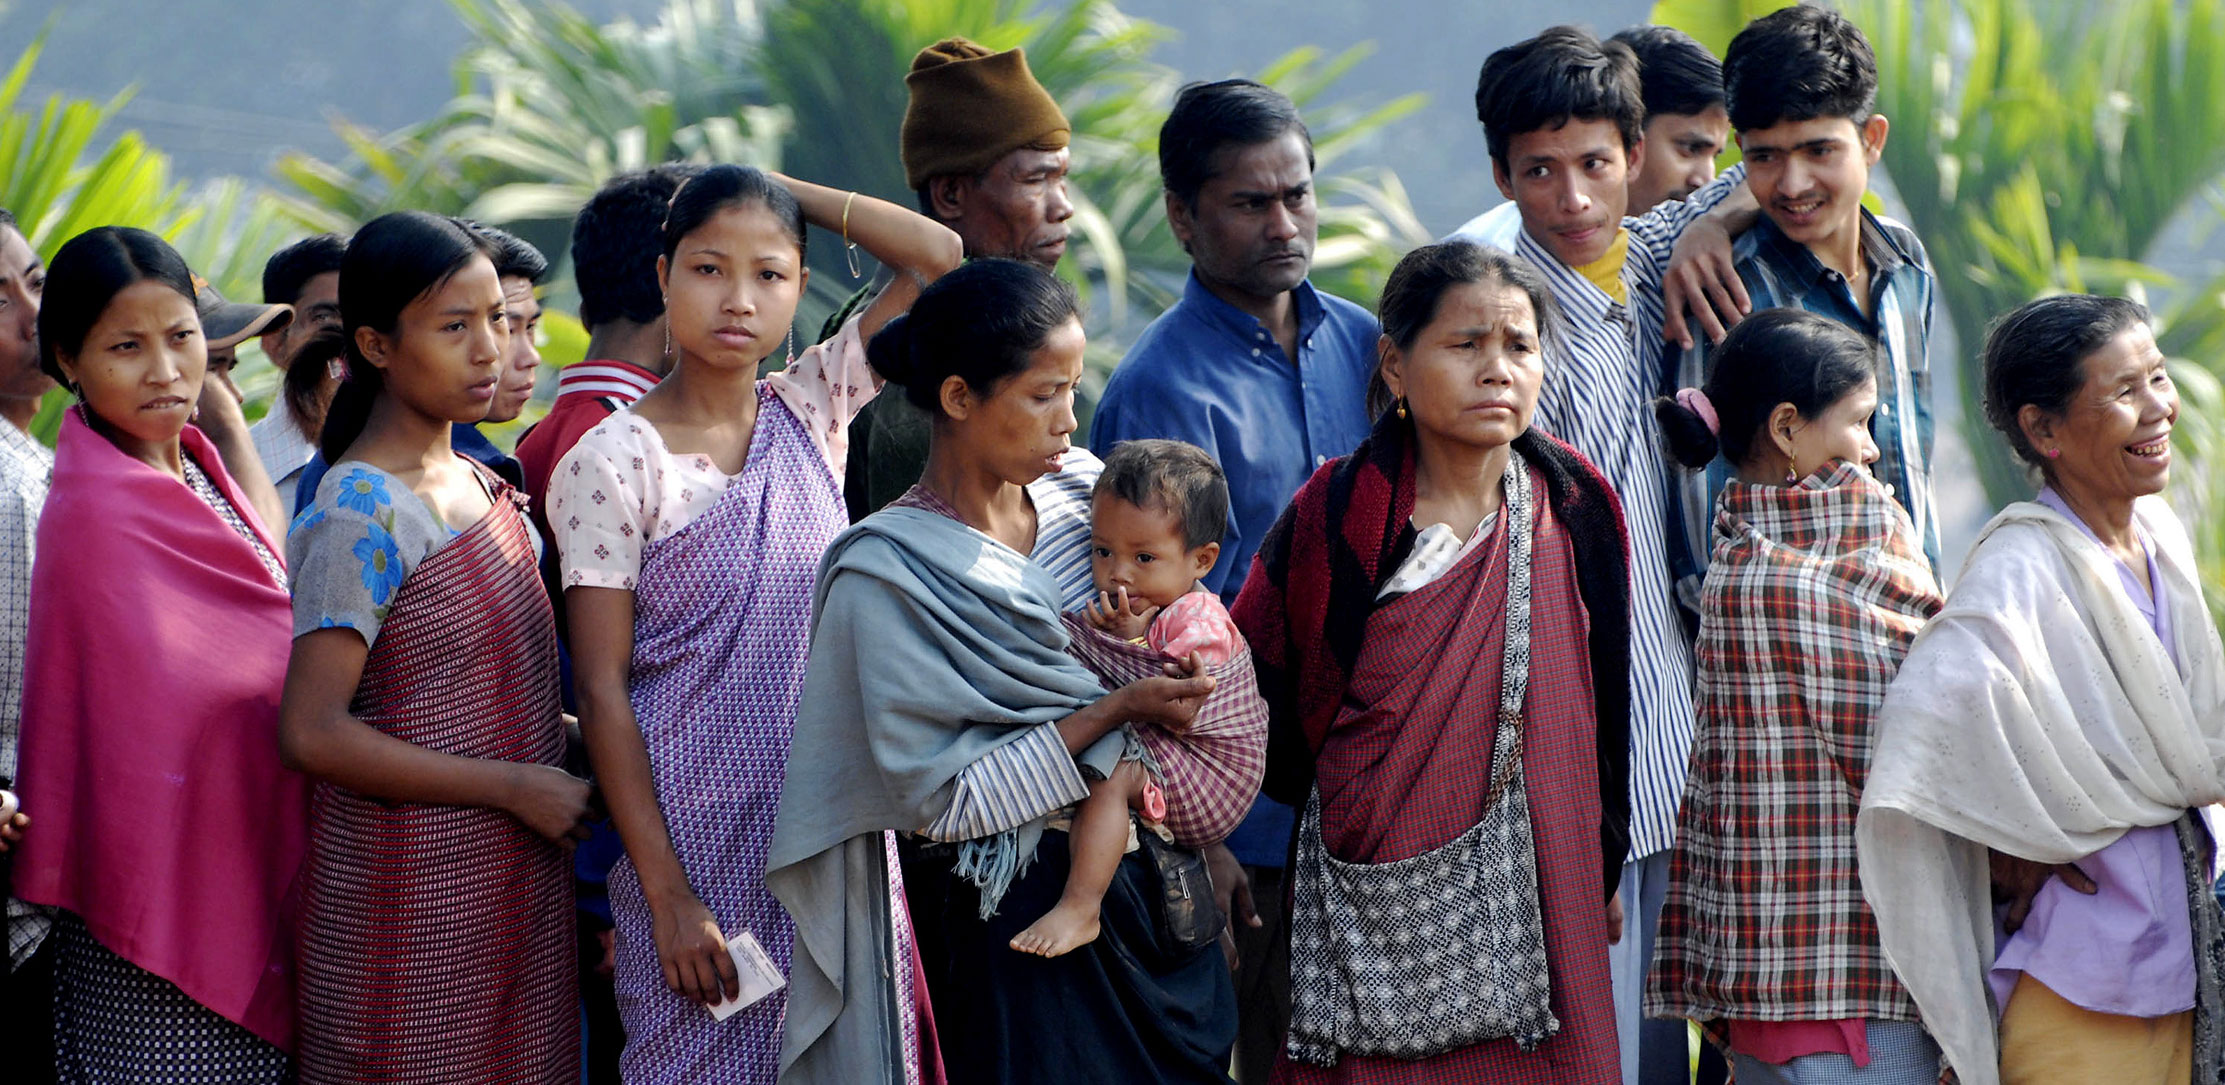 Married in Meghalaya: Feminist dream or the iron fist of matriarchy